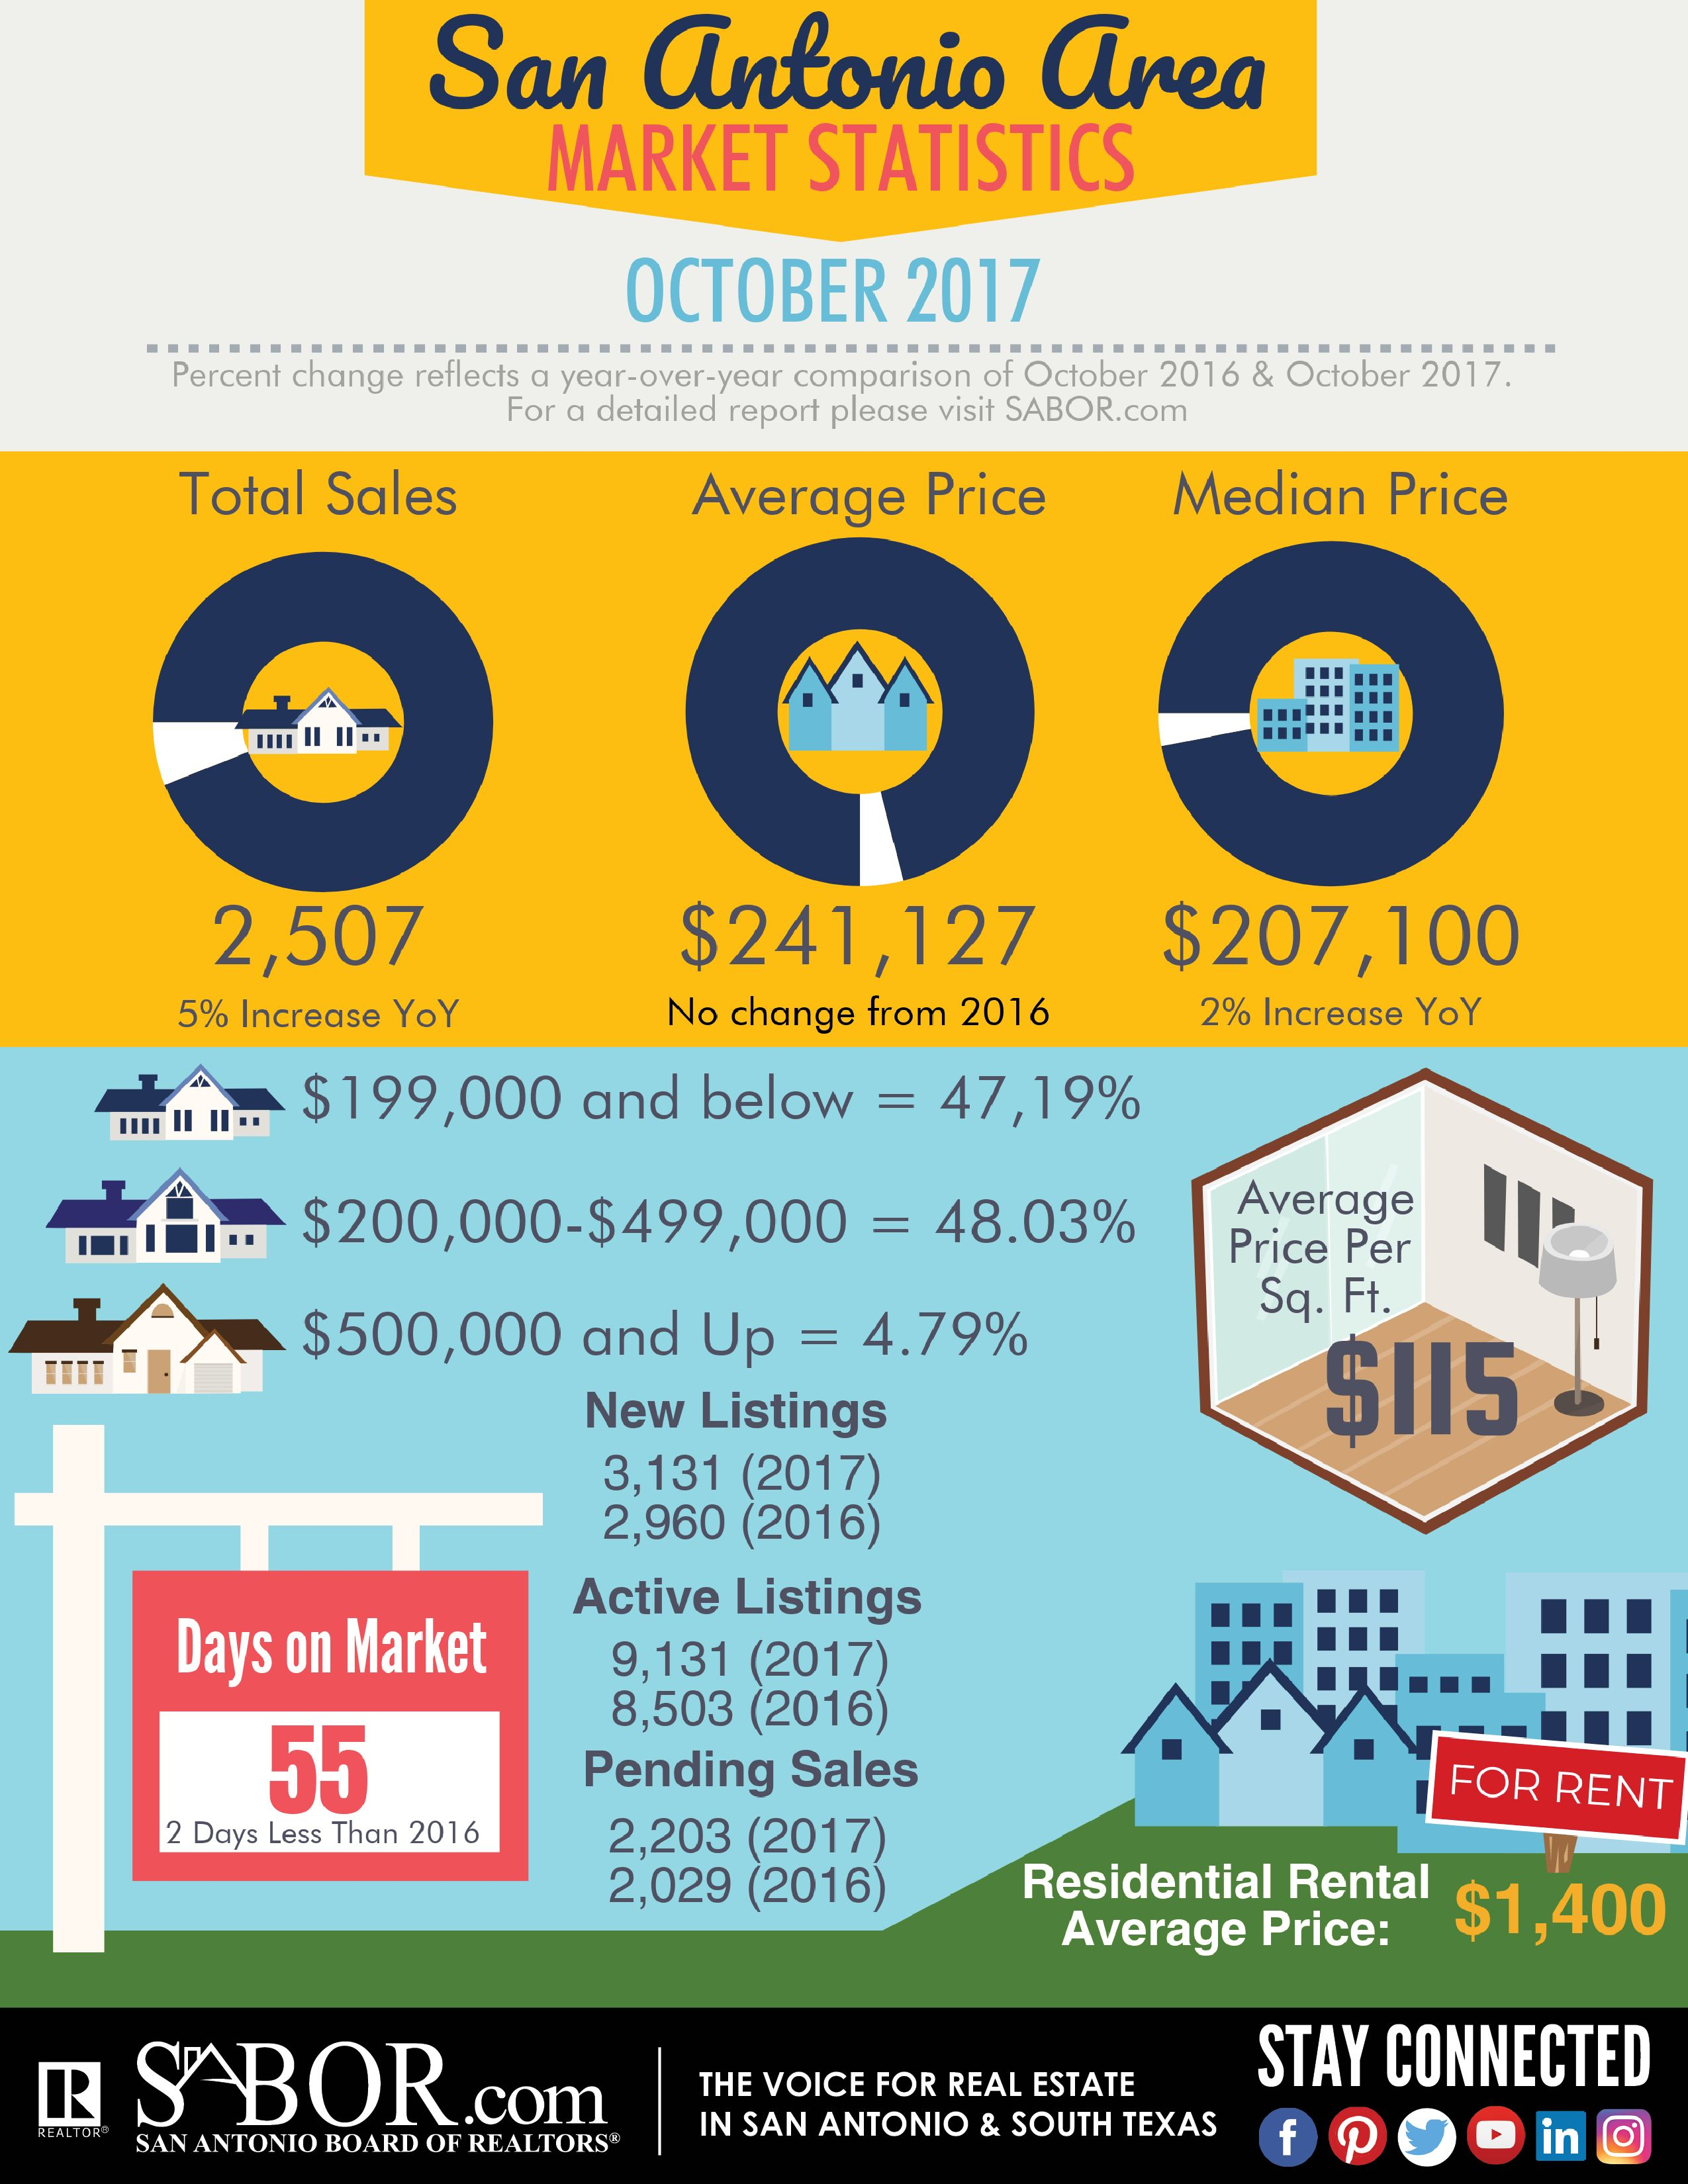 Sales in the San Antonio area increased 5% in October! Check out the